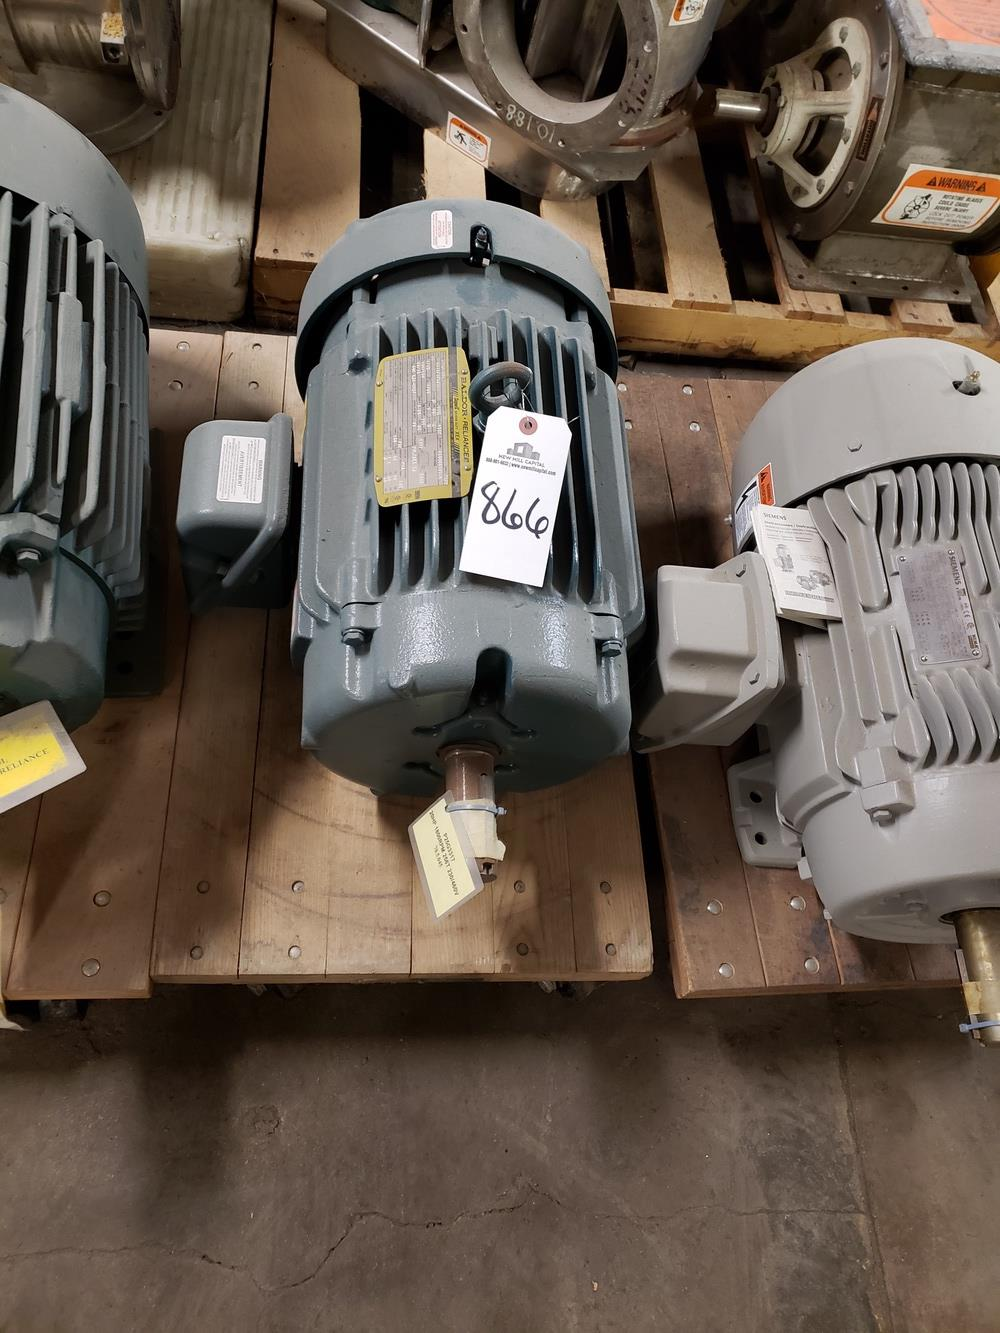 Baldor Electric Motor, 10 HP - Subject to Bulk Bid Lot 845B -The Greater of th | Rig Fee: No Charge